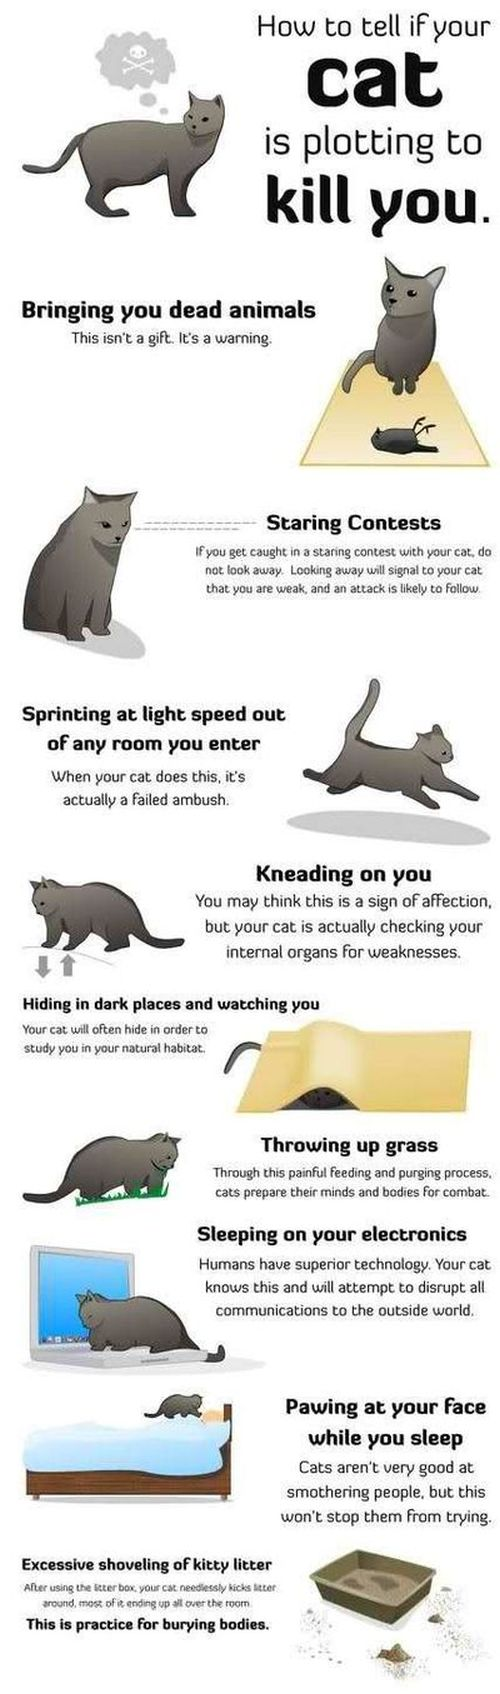 how to tell if your cat is plotting on killing you